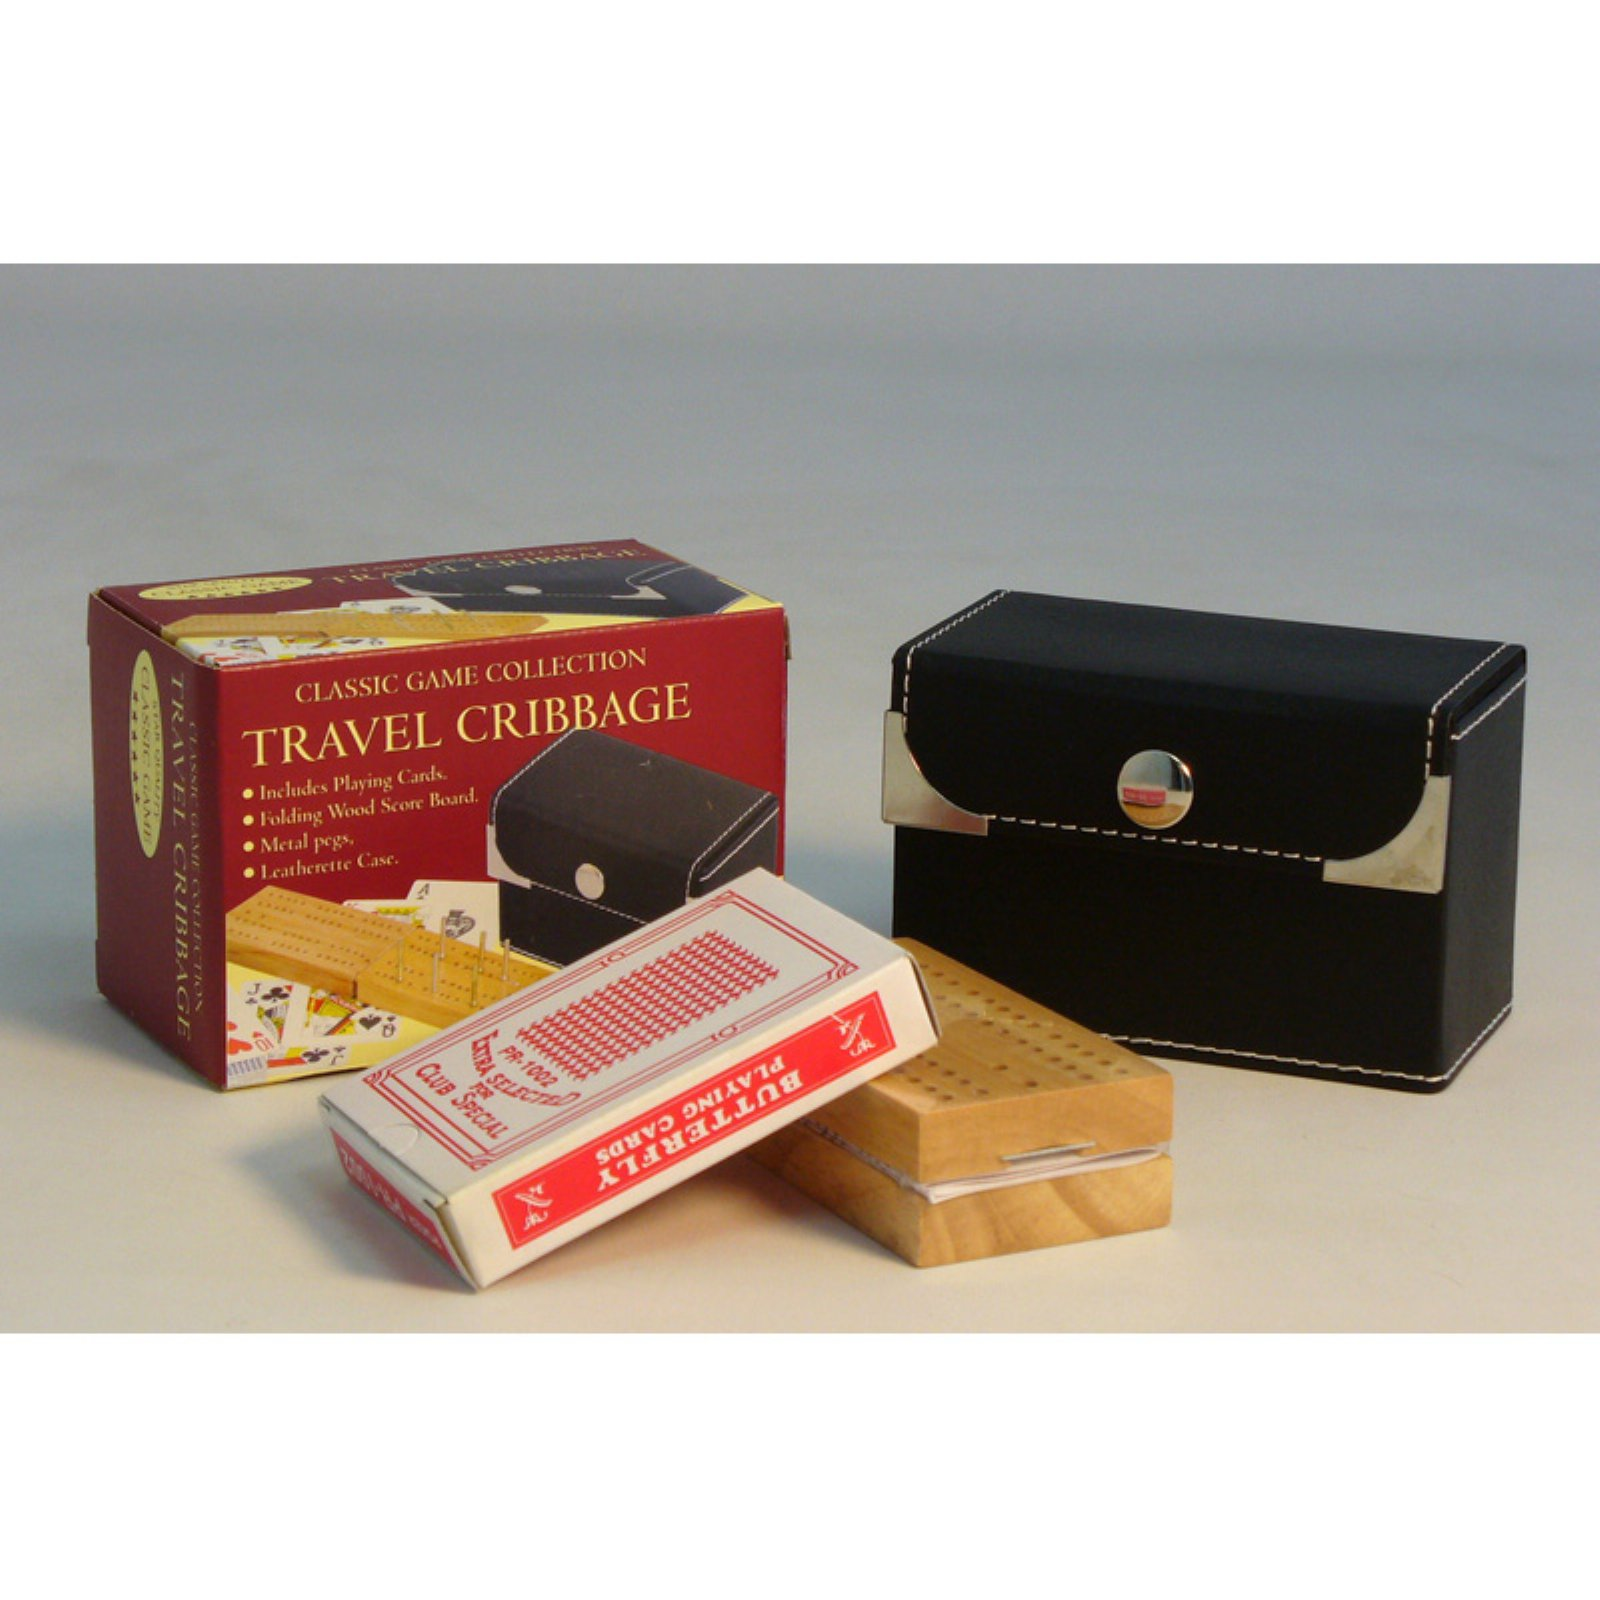 Classic Games Collection Travel Cribbage